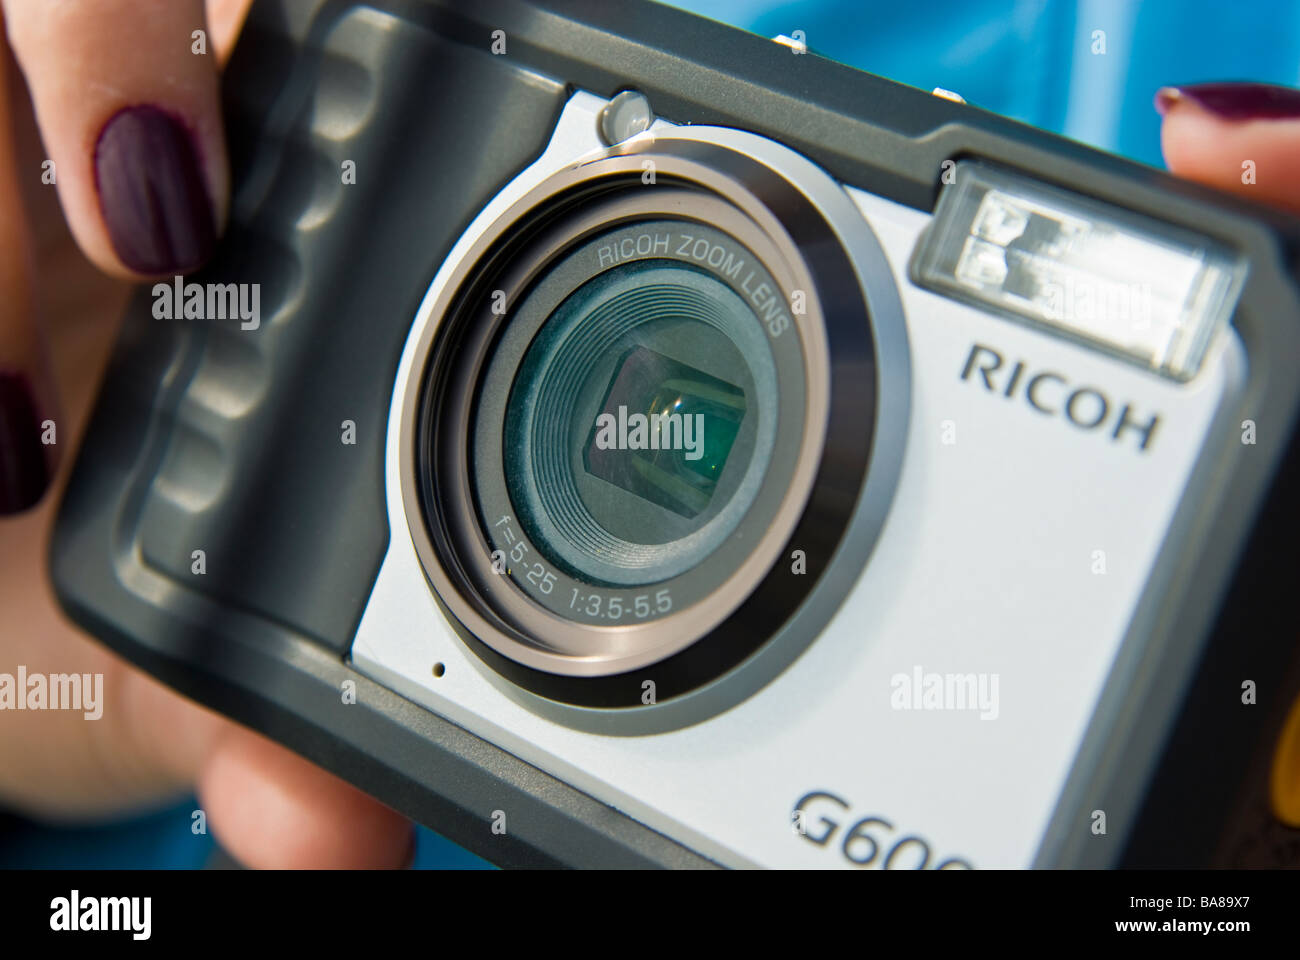 Girl with compact digital Camera taking picture | Mädchen fotografiert mit digitaler Kompaktkamera - Stock Image